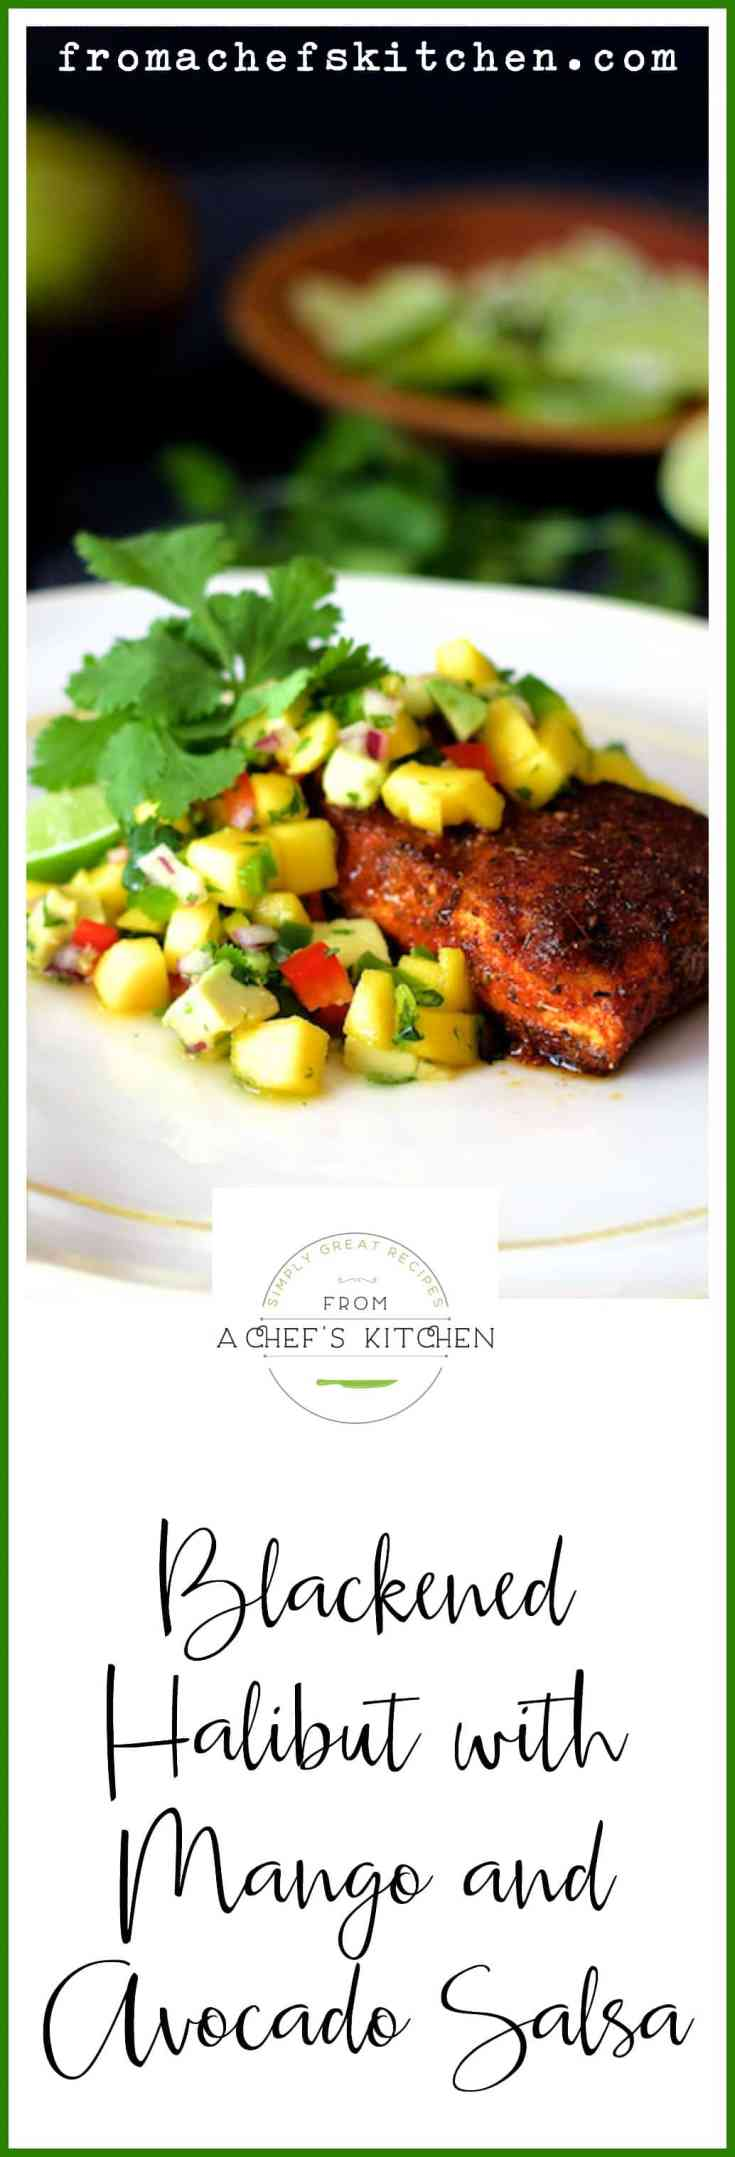 Blackened Halibut with Mango and Avocado Salsa is sure to become your new favorite fish dish! You'll never buy blackening spice again once you try this homemade blend! #fish #fishandseafood #blackened #blackenedhalibut #mango #avocado #salsa #lightandhealthy